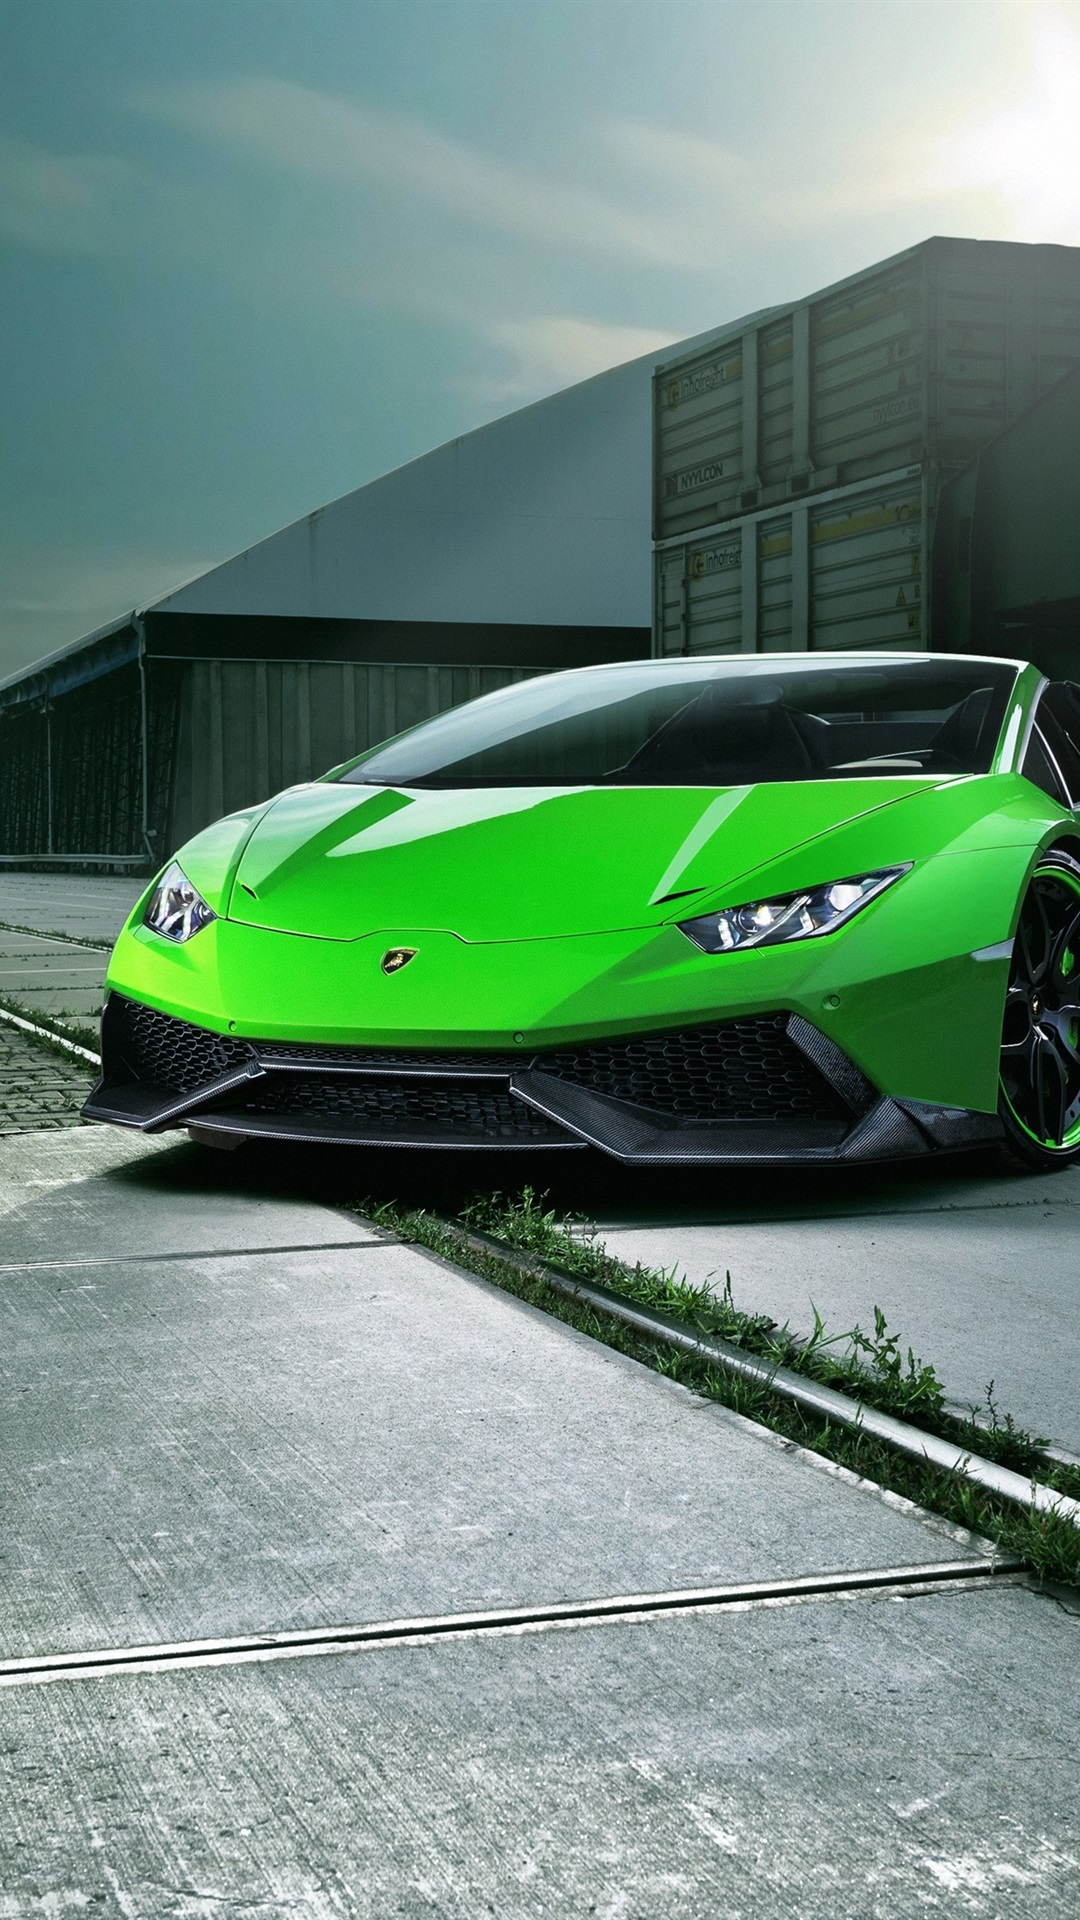 Green Lamborghini Wallpaper Iphone 1433516 Hd Wallpaper